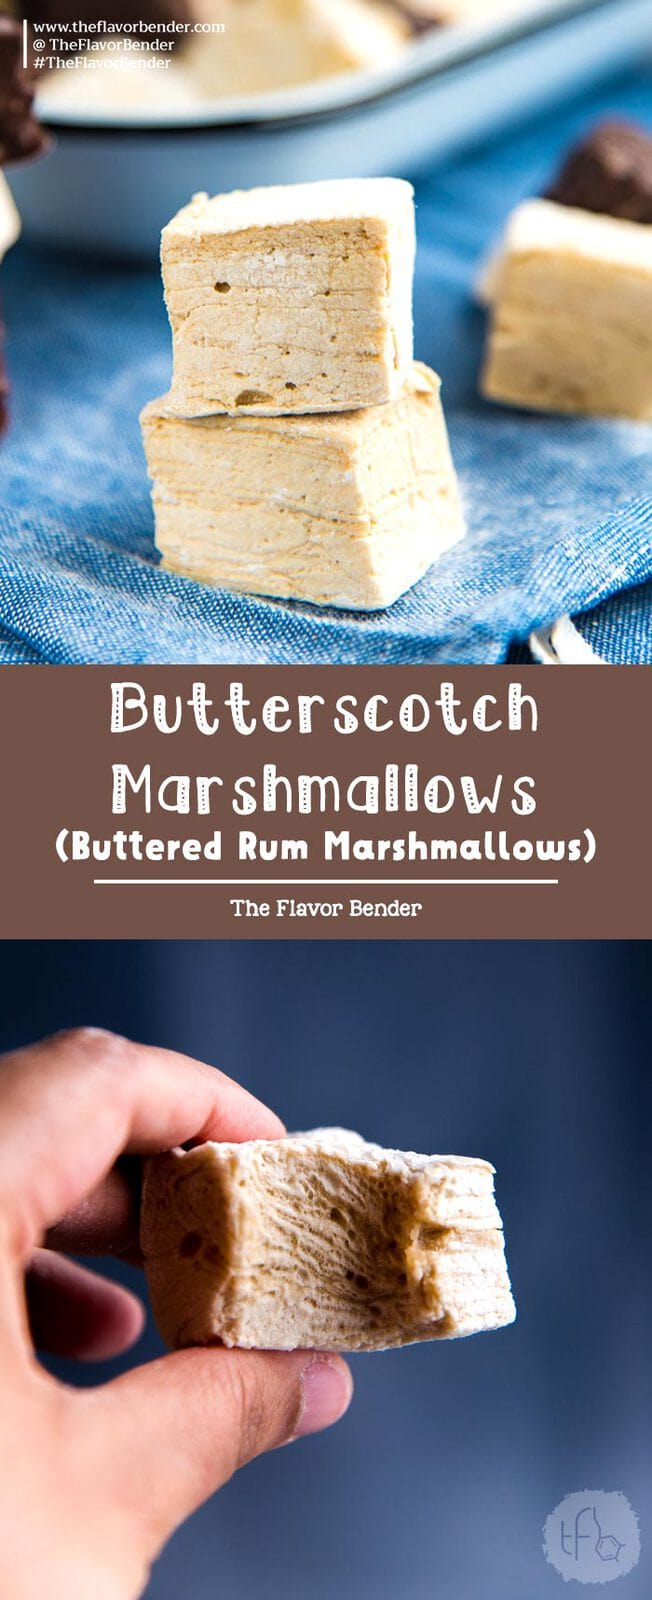 Butterscotch marshmallows (or buttered rum marshmallows) - soft, buttery and fluffy marshmallows that are easy to make, delicious to eat and perfect for gift giving too! #Marshmallows #HolidayRecipes #Confections #Butterscotch #EdibleGifts #ButteredRumMarshmallow